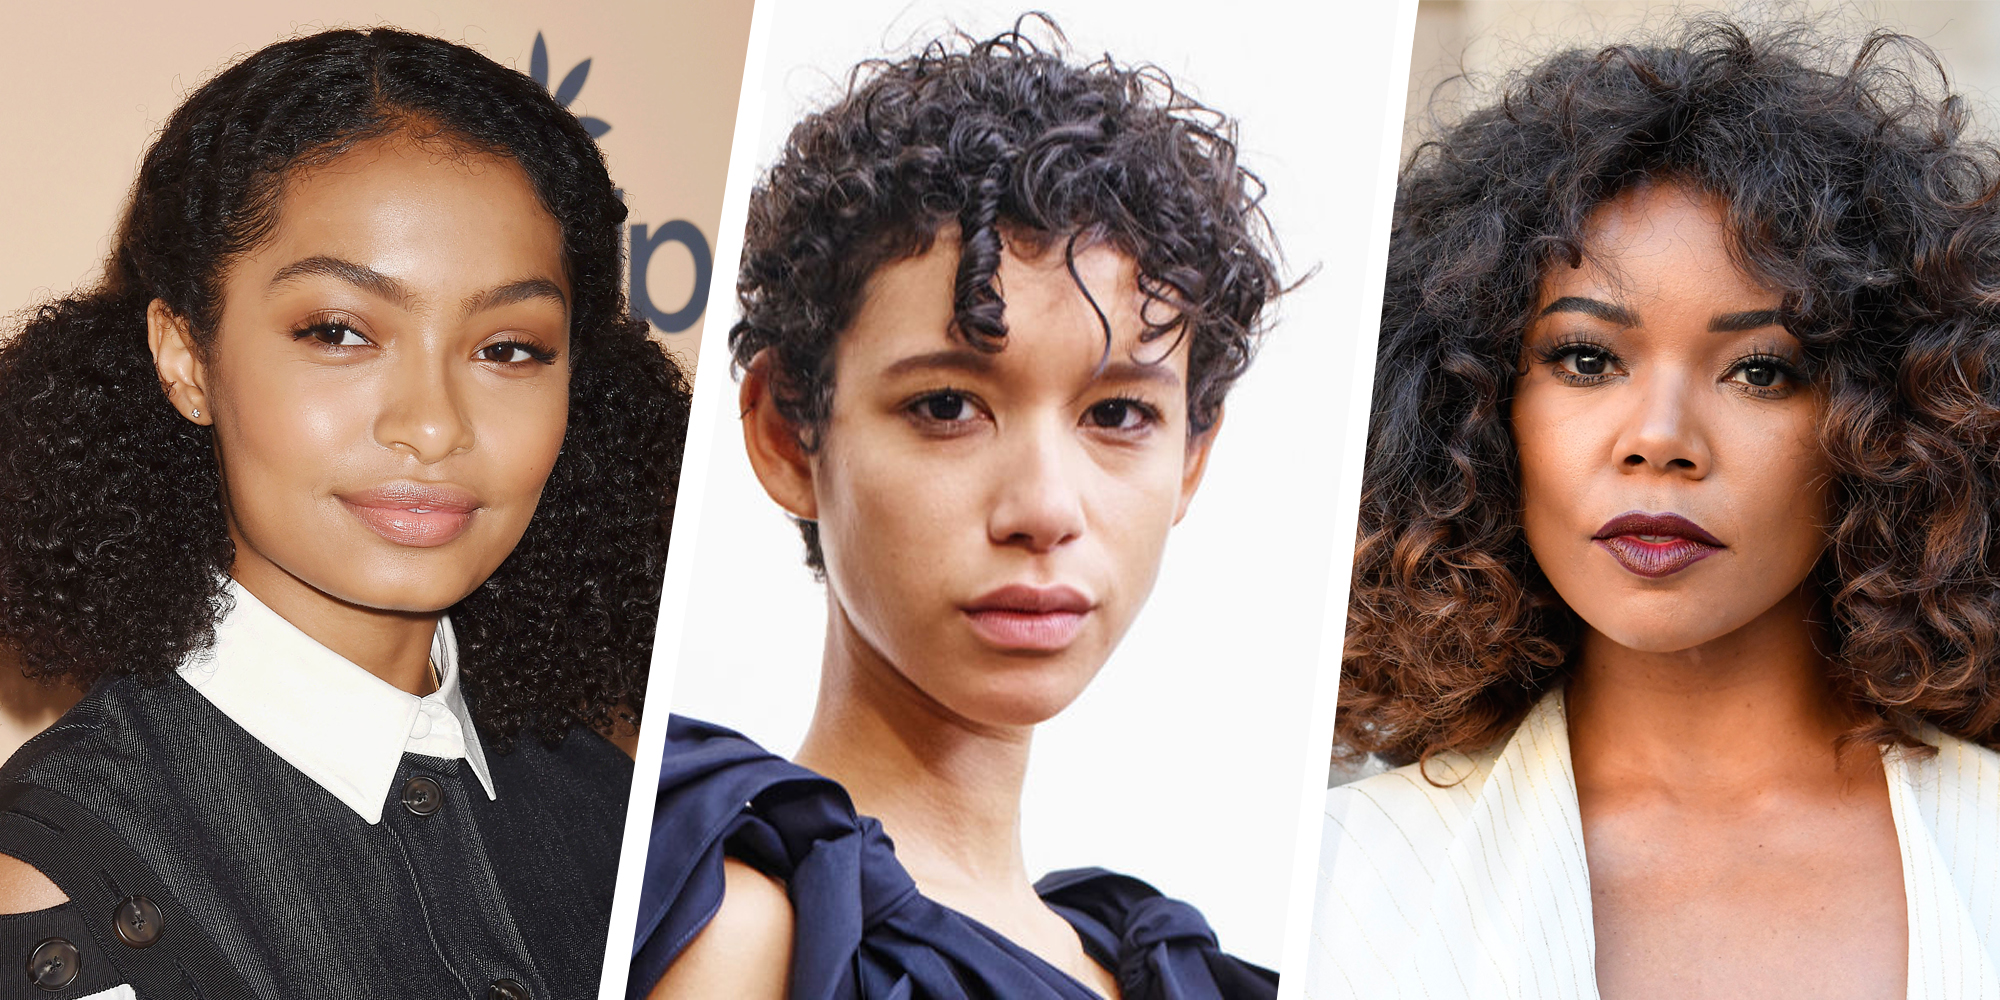 Hair Styles For Short Natural Curly Hair: How To Style Long, Medium, Or